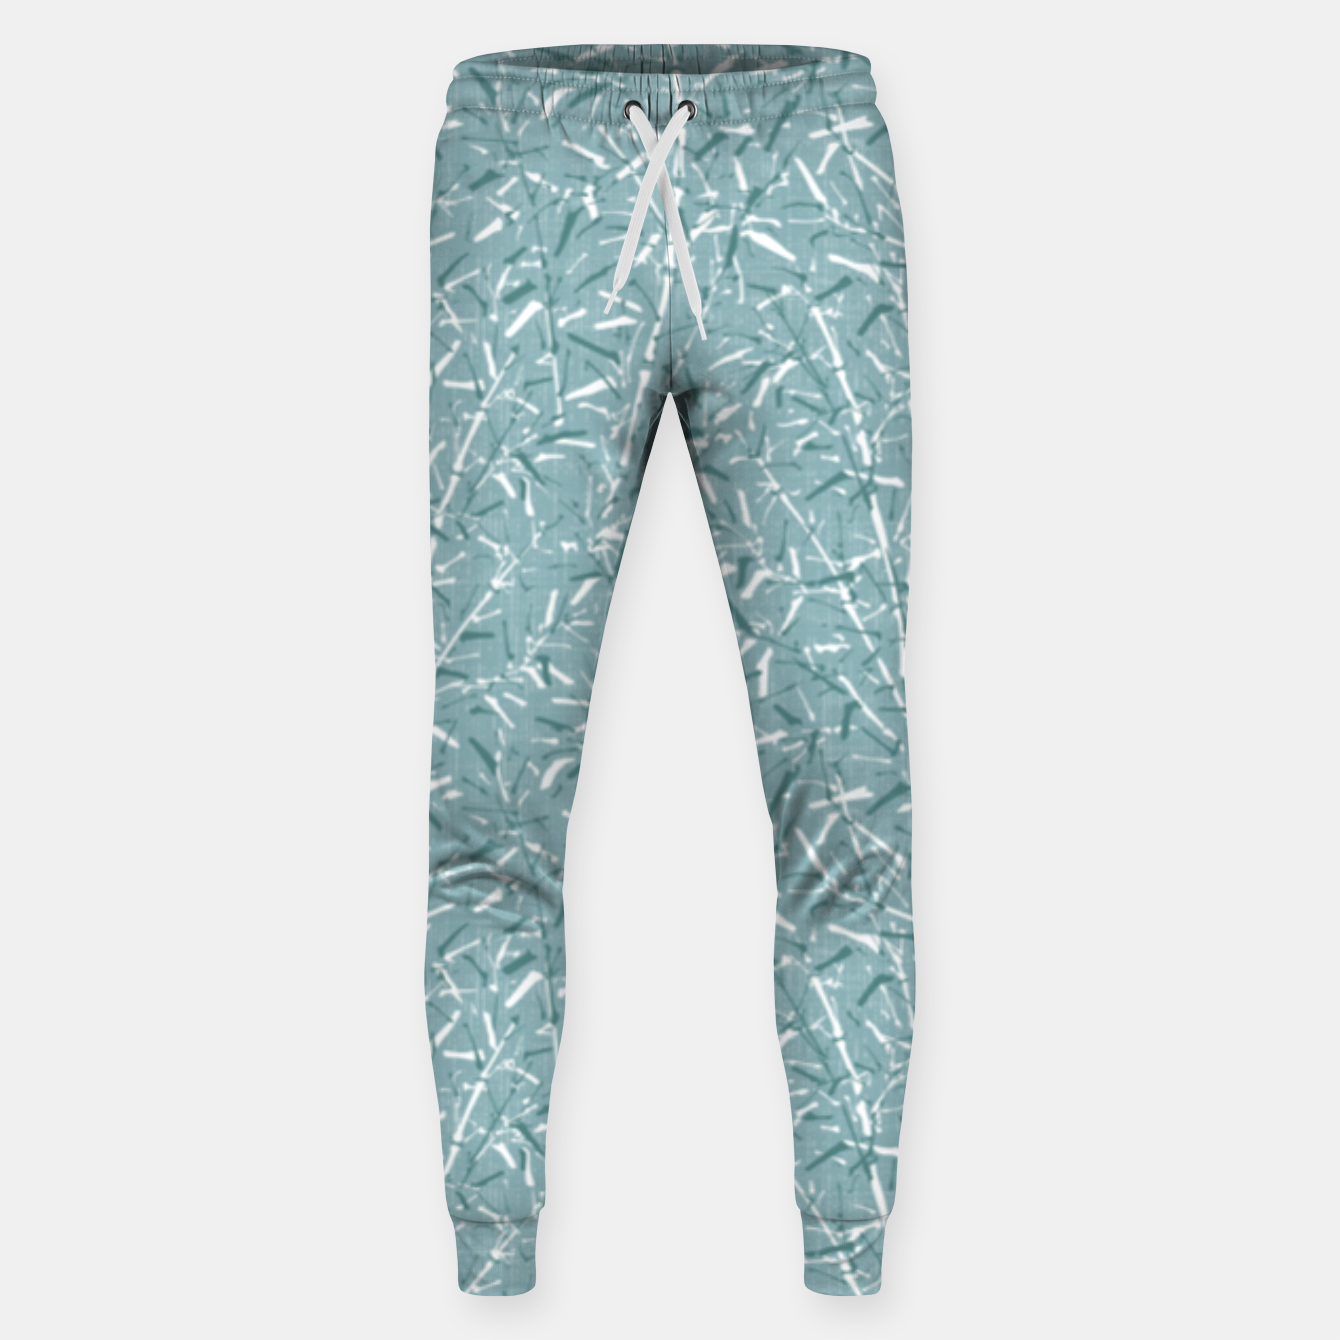 Image de Textured Bamboo Forest in Teal Blue Sweatpants - Live Heroes